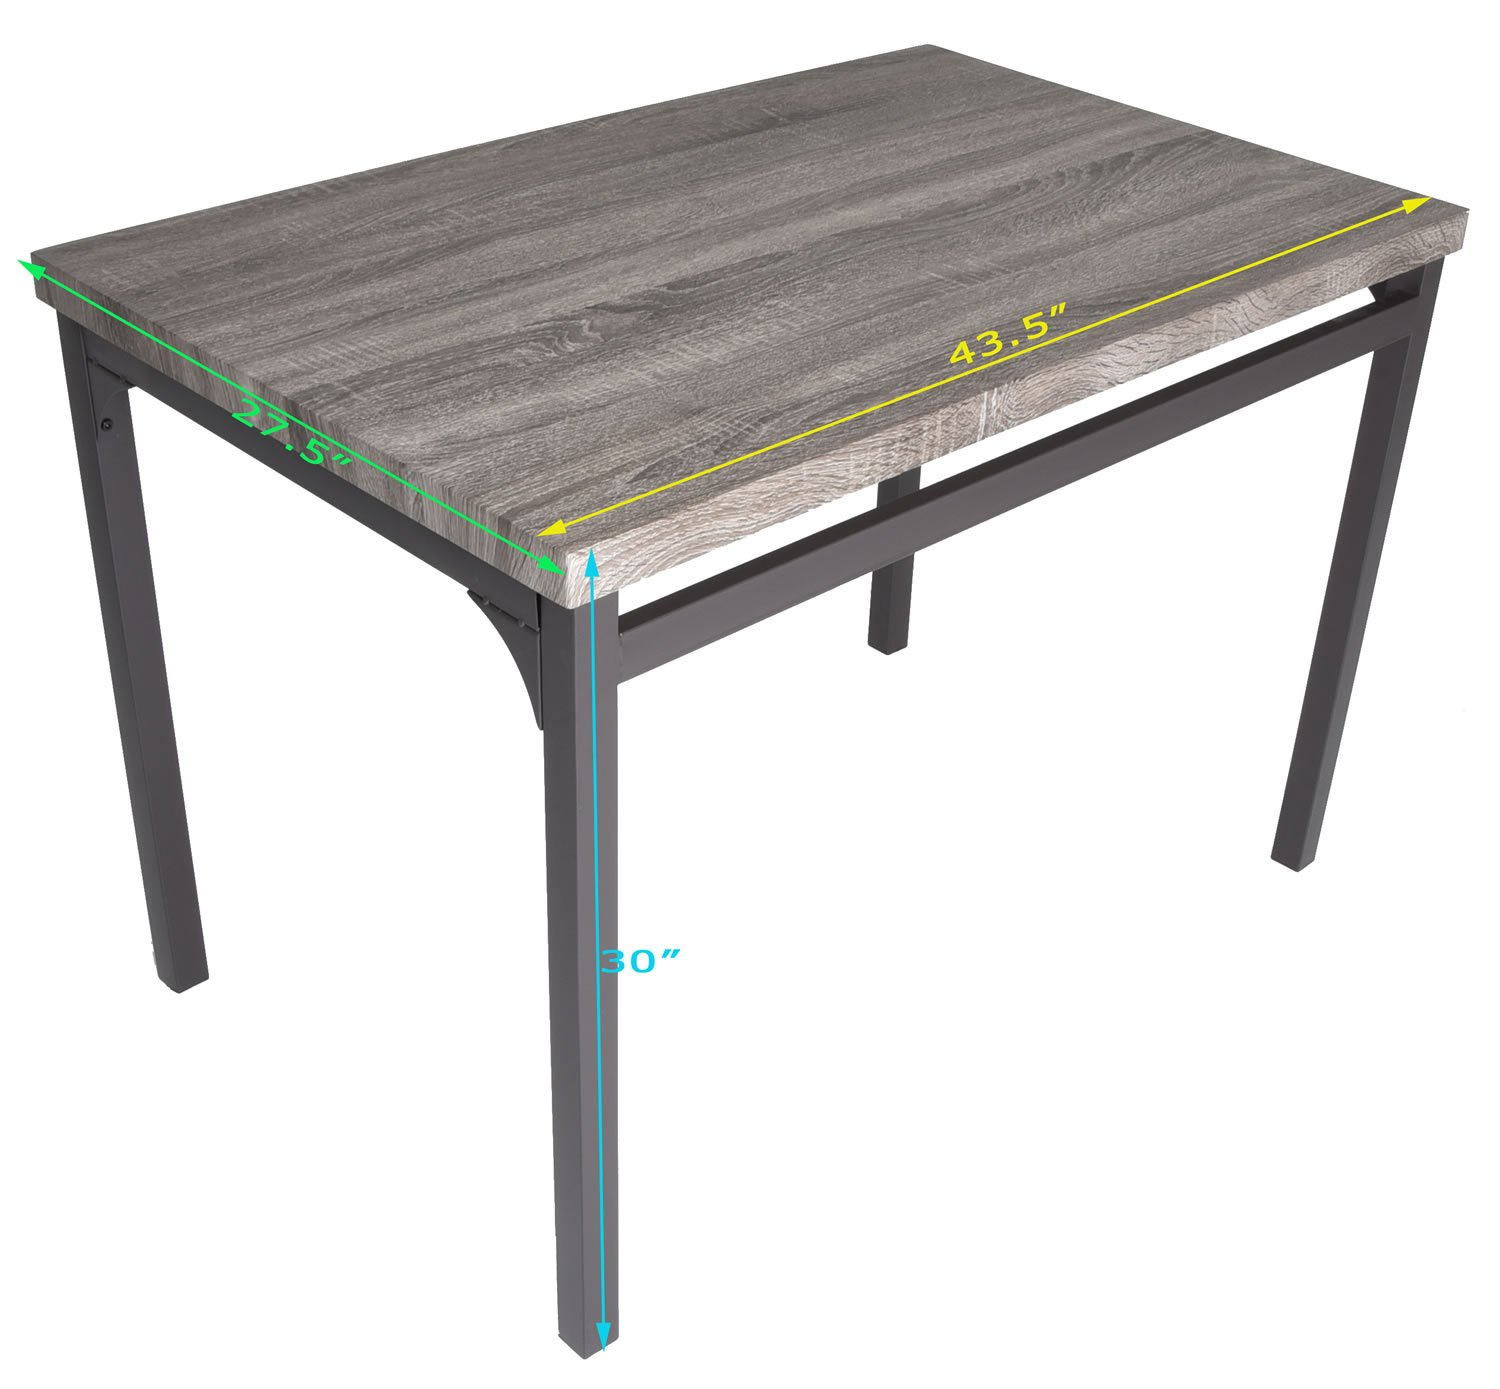 Zenvida 5 Piece Dining Set Rustic Grey Wooden Kitchen Table and 4 Chairs by Zenvida (Image #7)